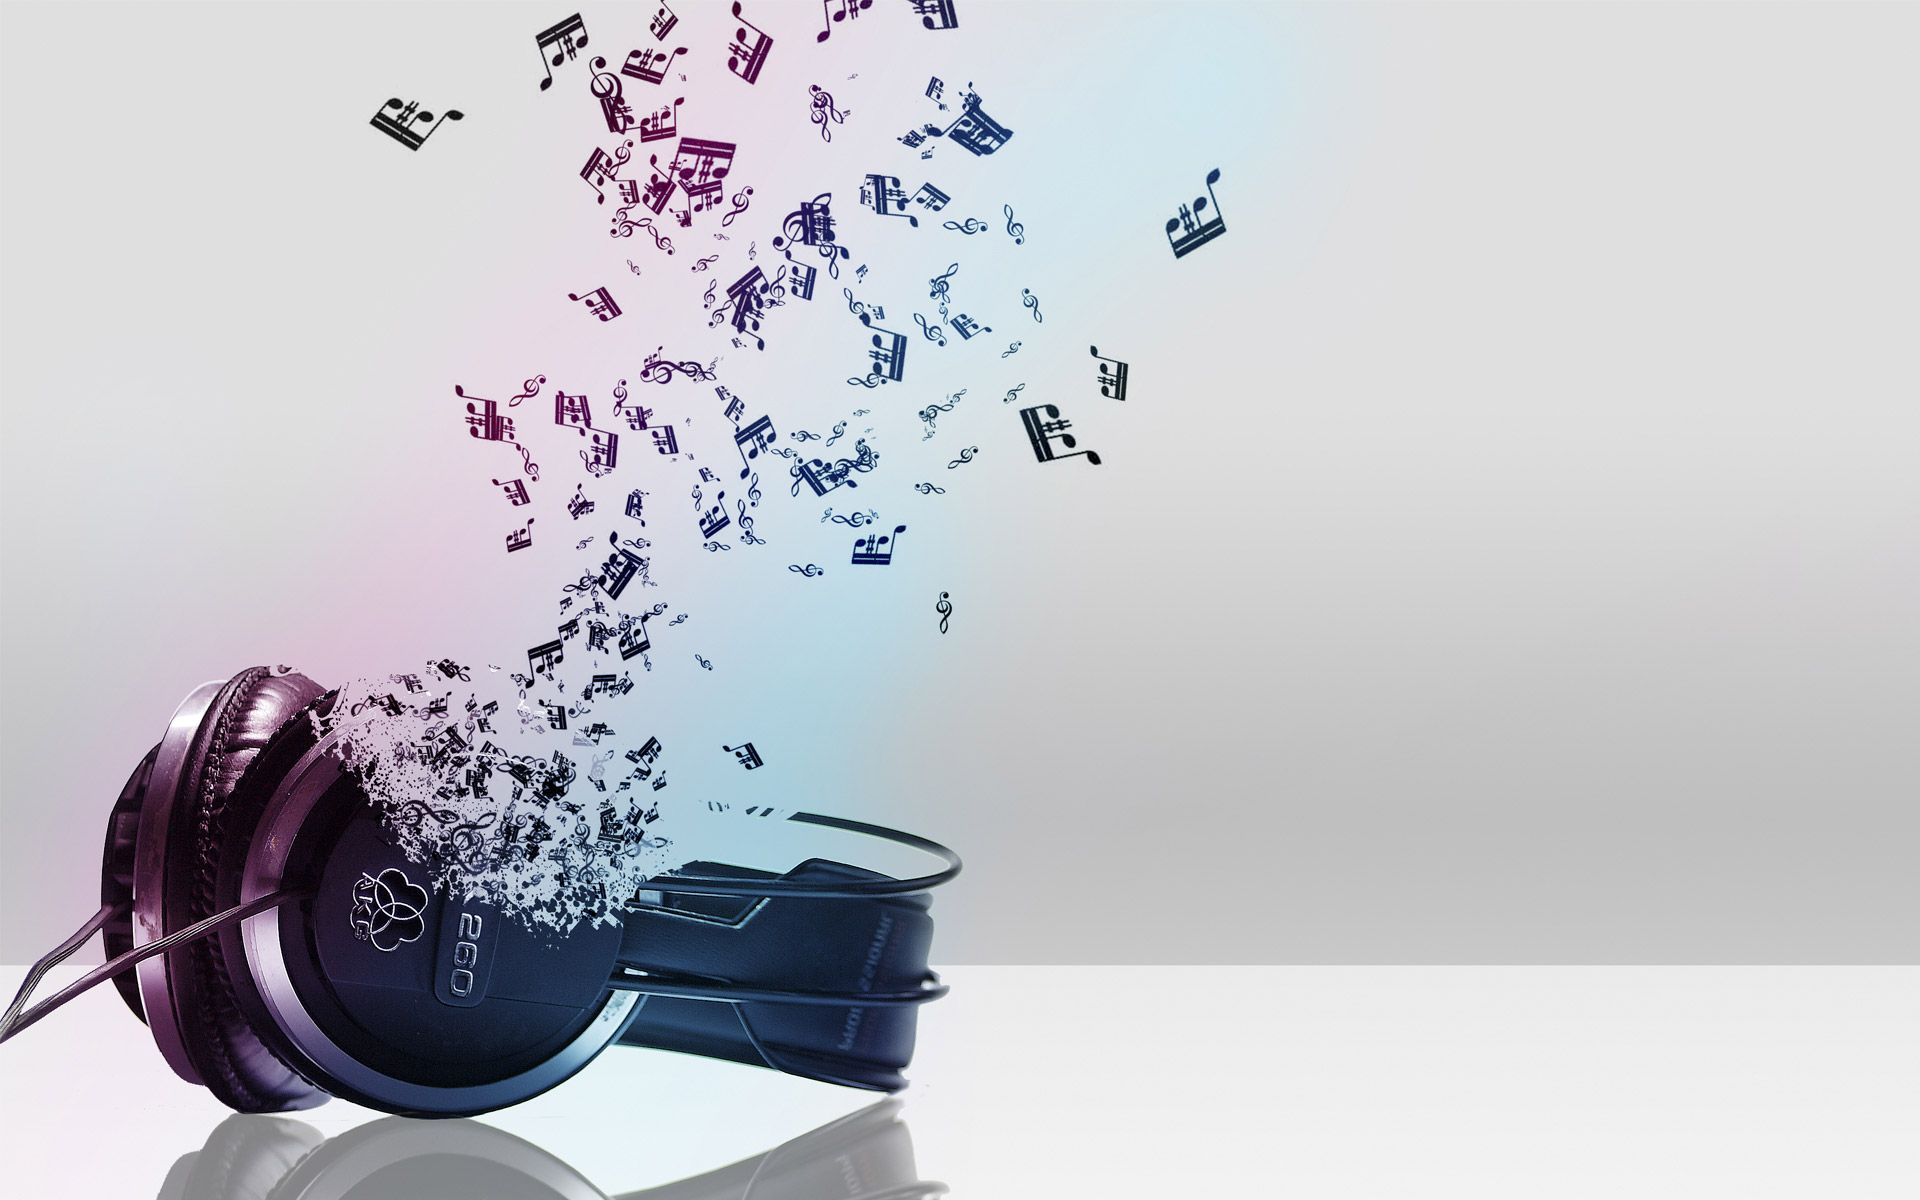 80 Free Music Wallpapers HD for PC Be Musical! Music